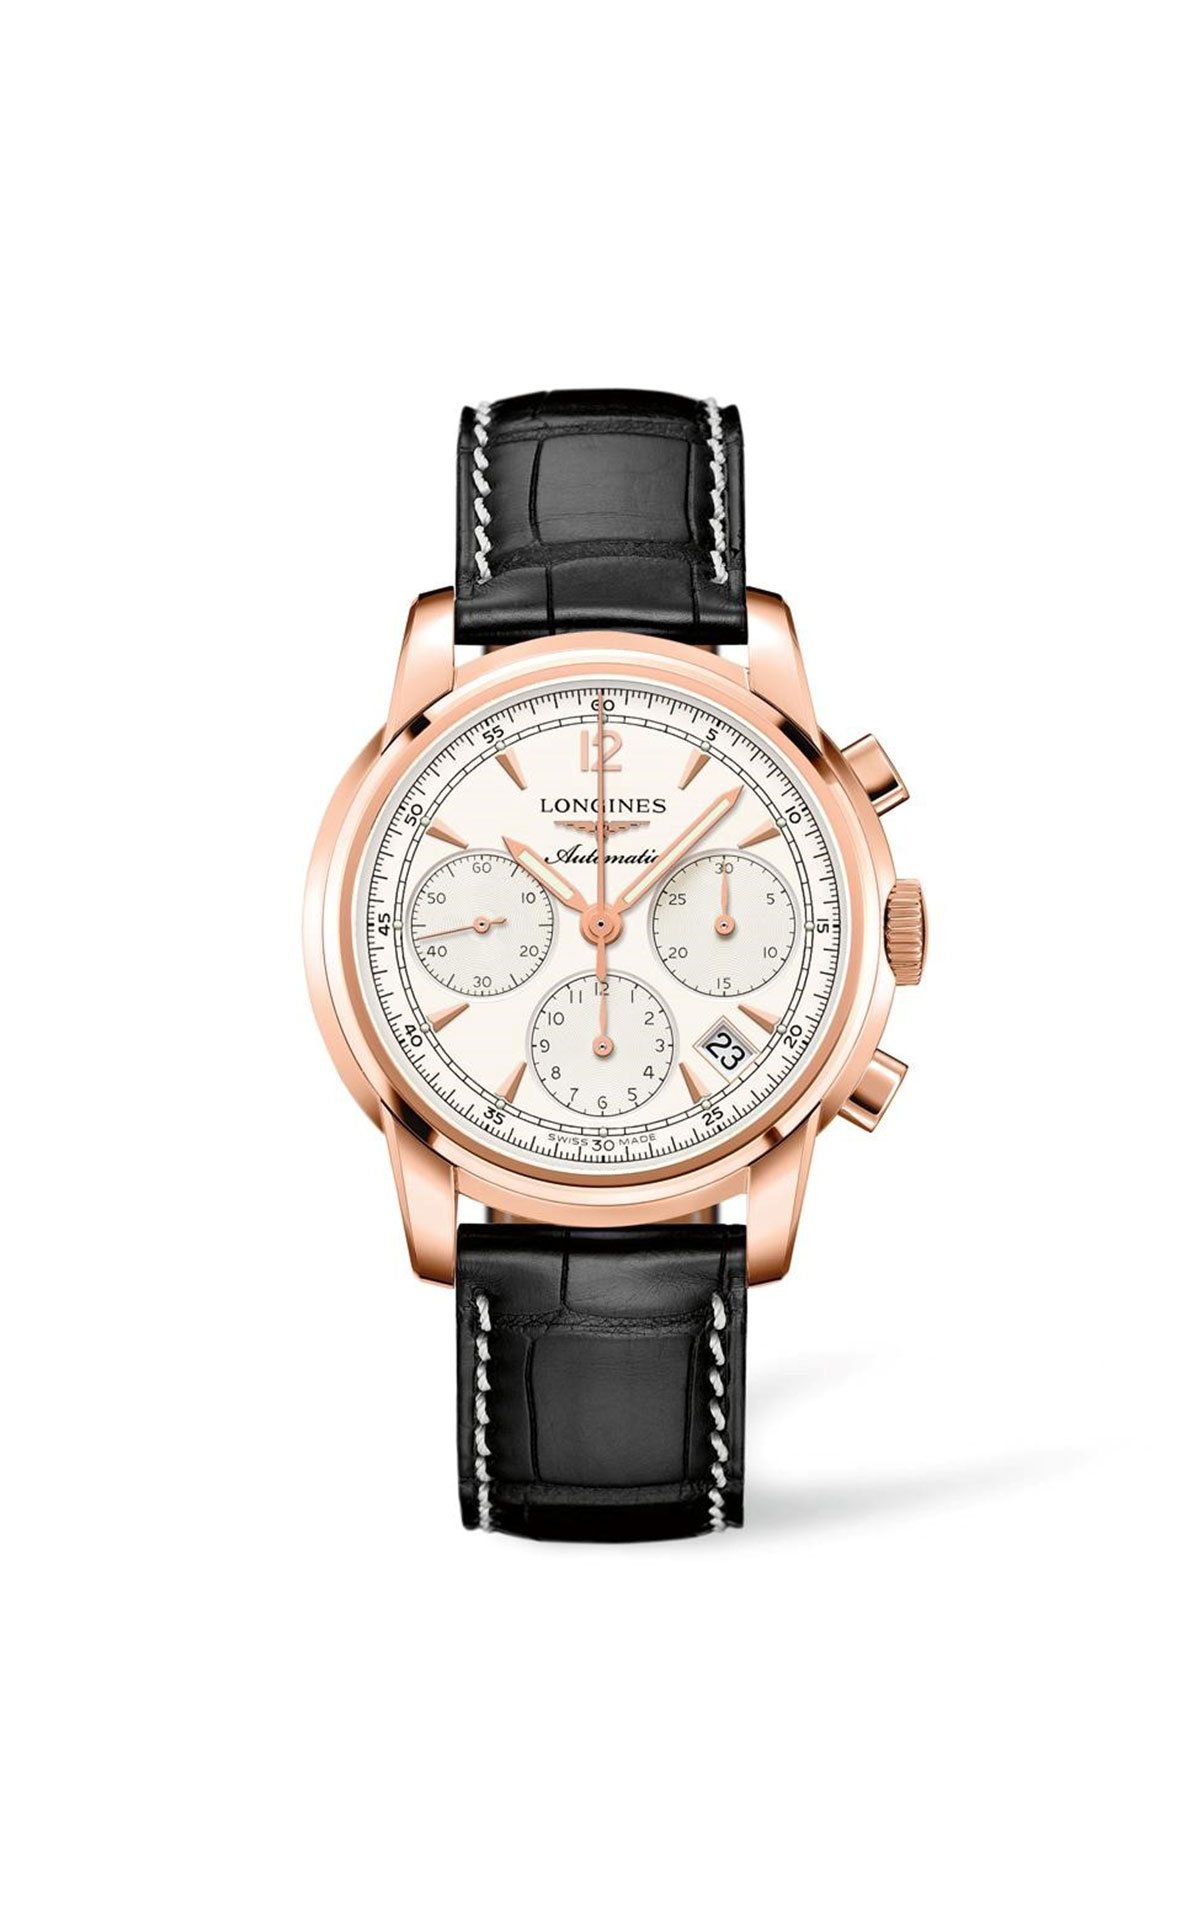 Hour Passion The Longines saint imier collection 18ct pink gold automatic gents watch from Bicester Village